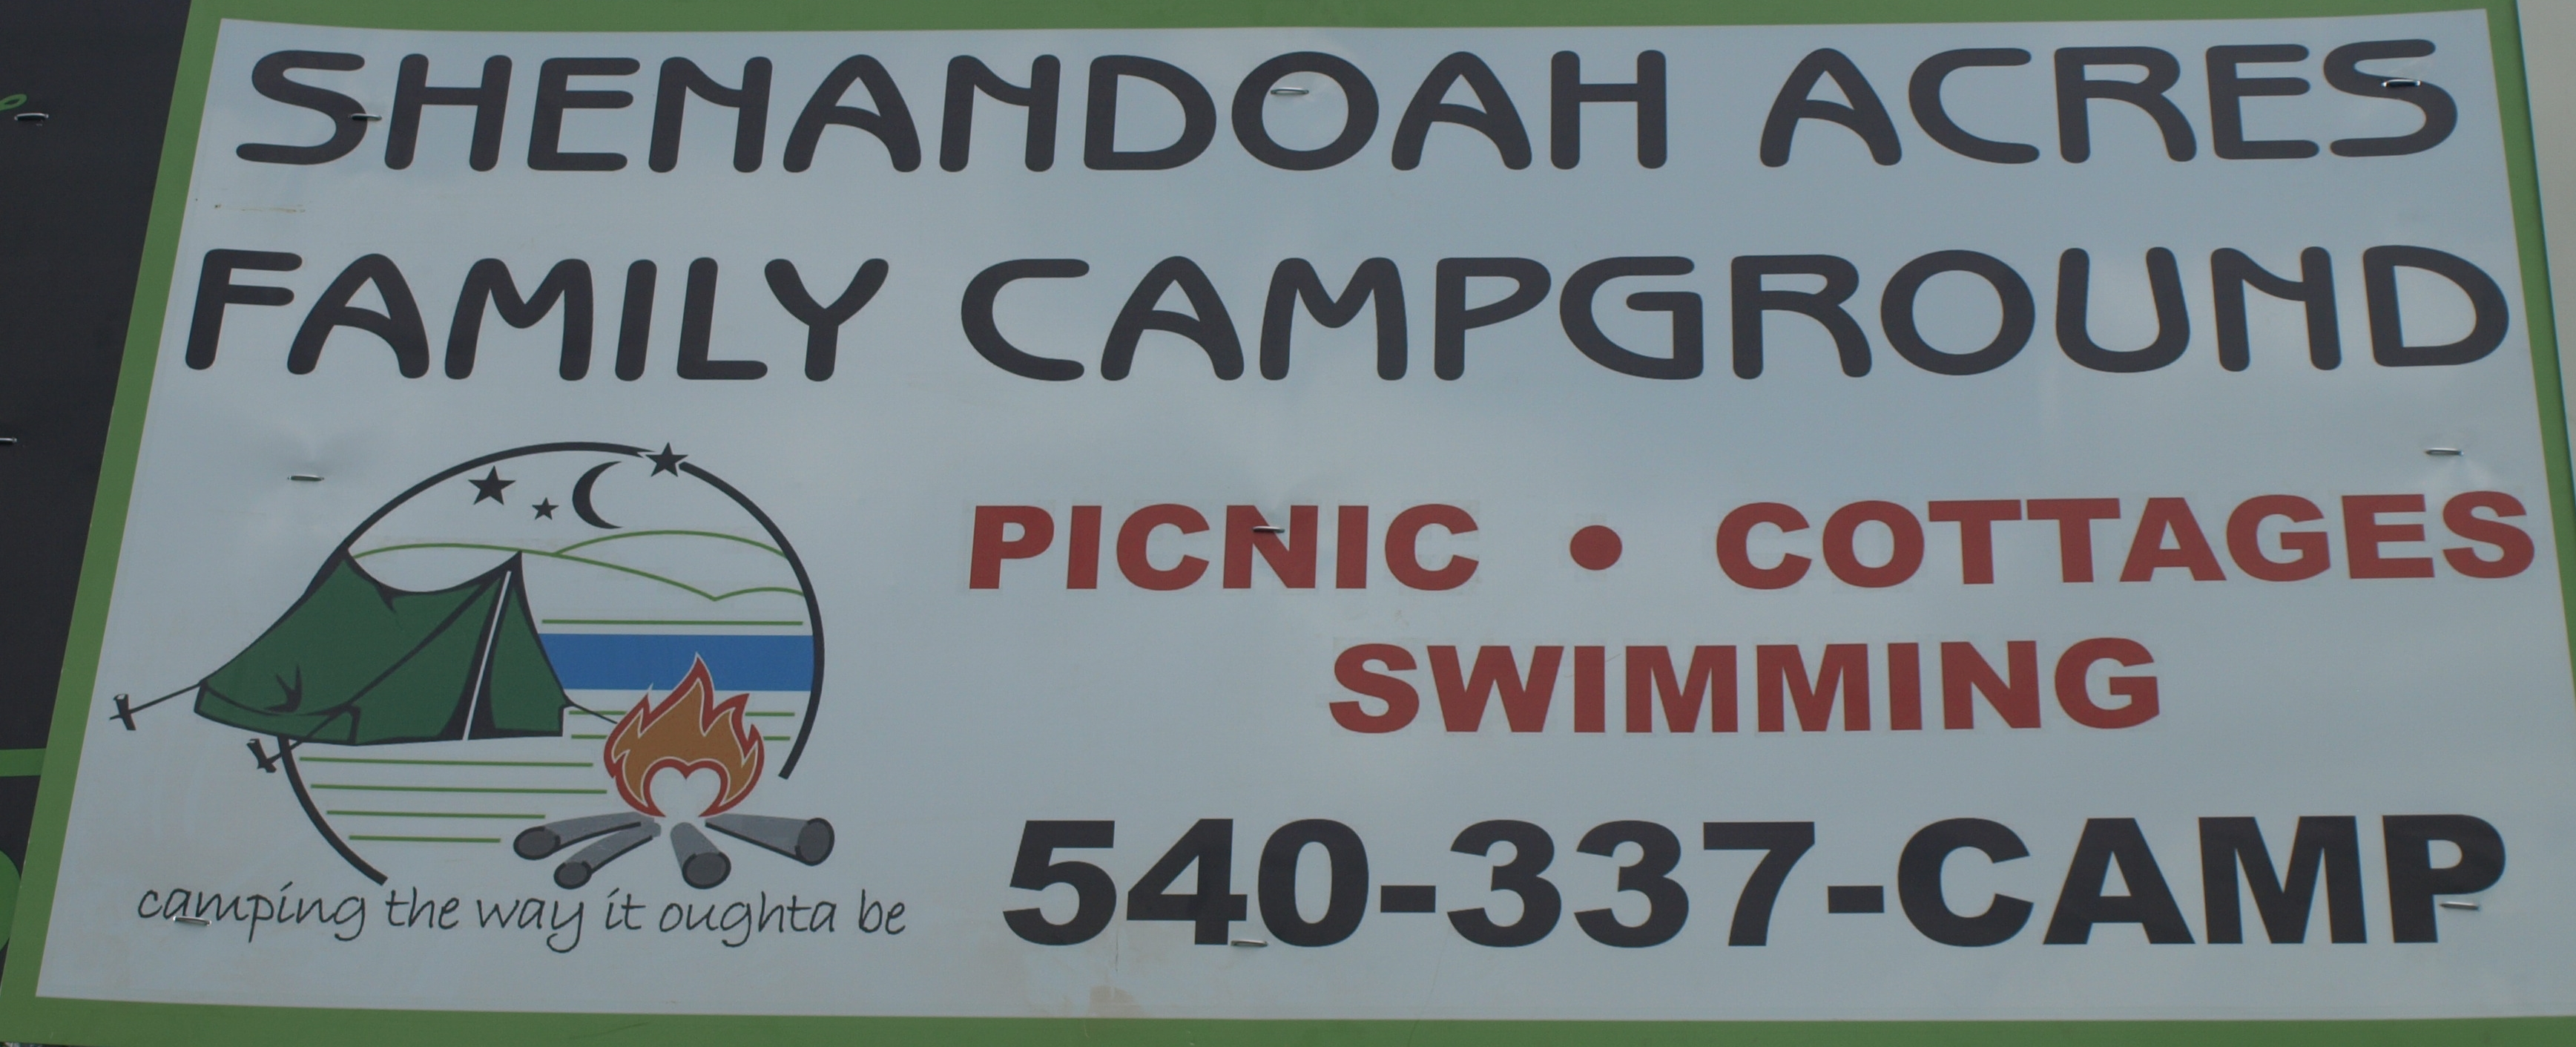 Shenandoah Acres Family Campground